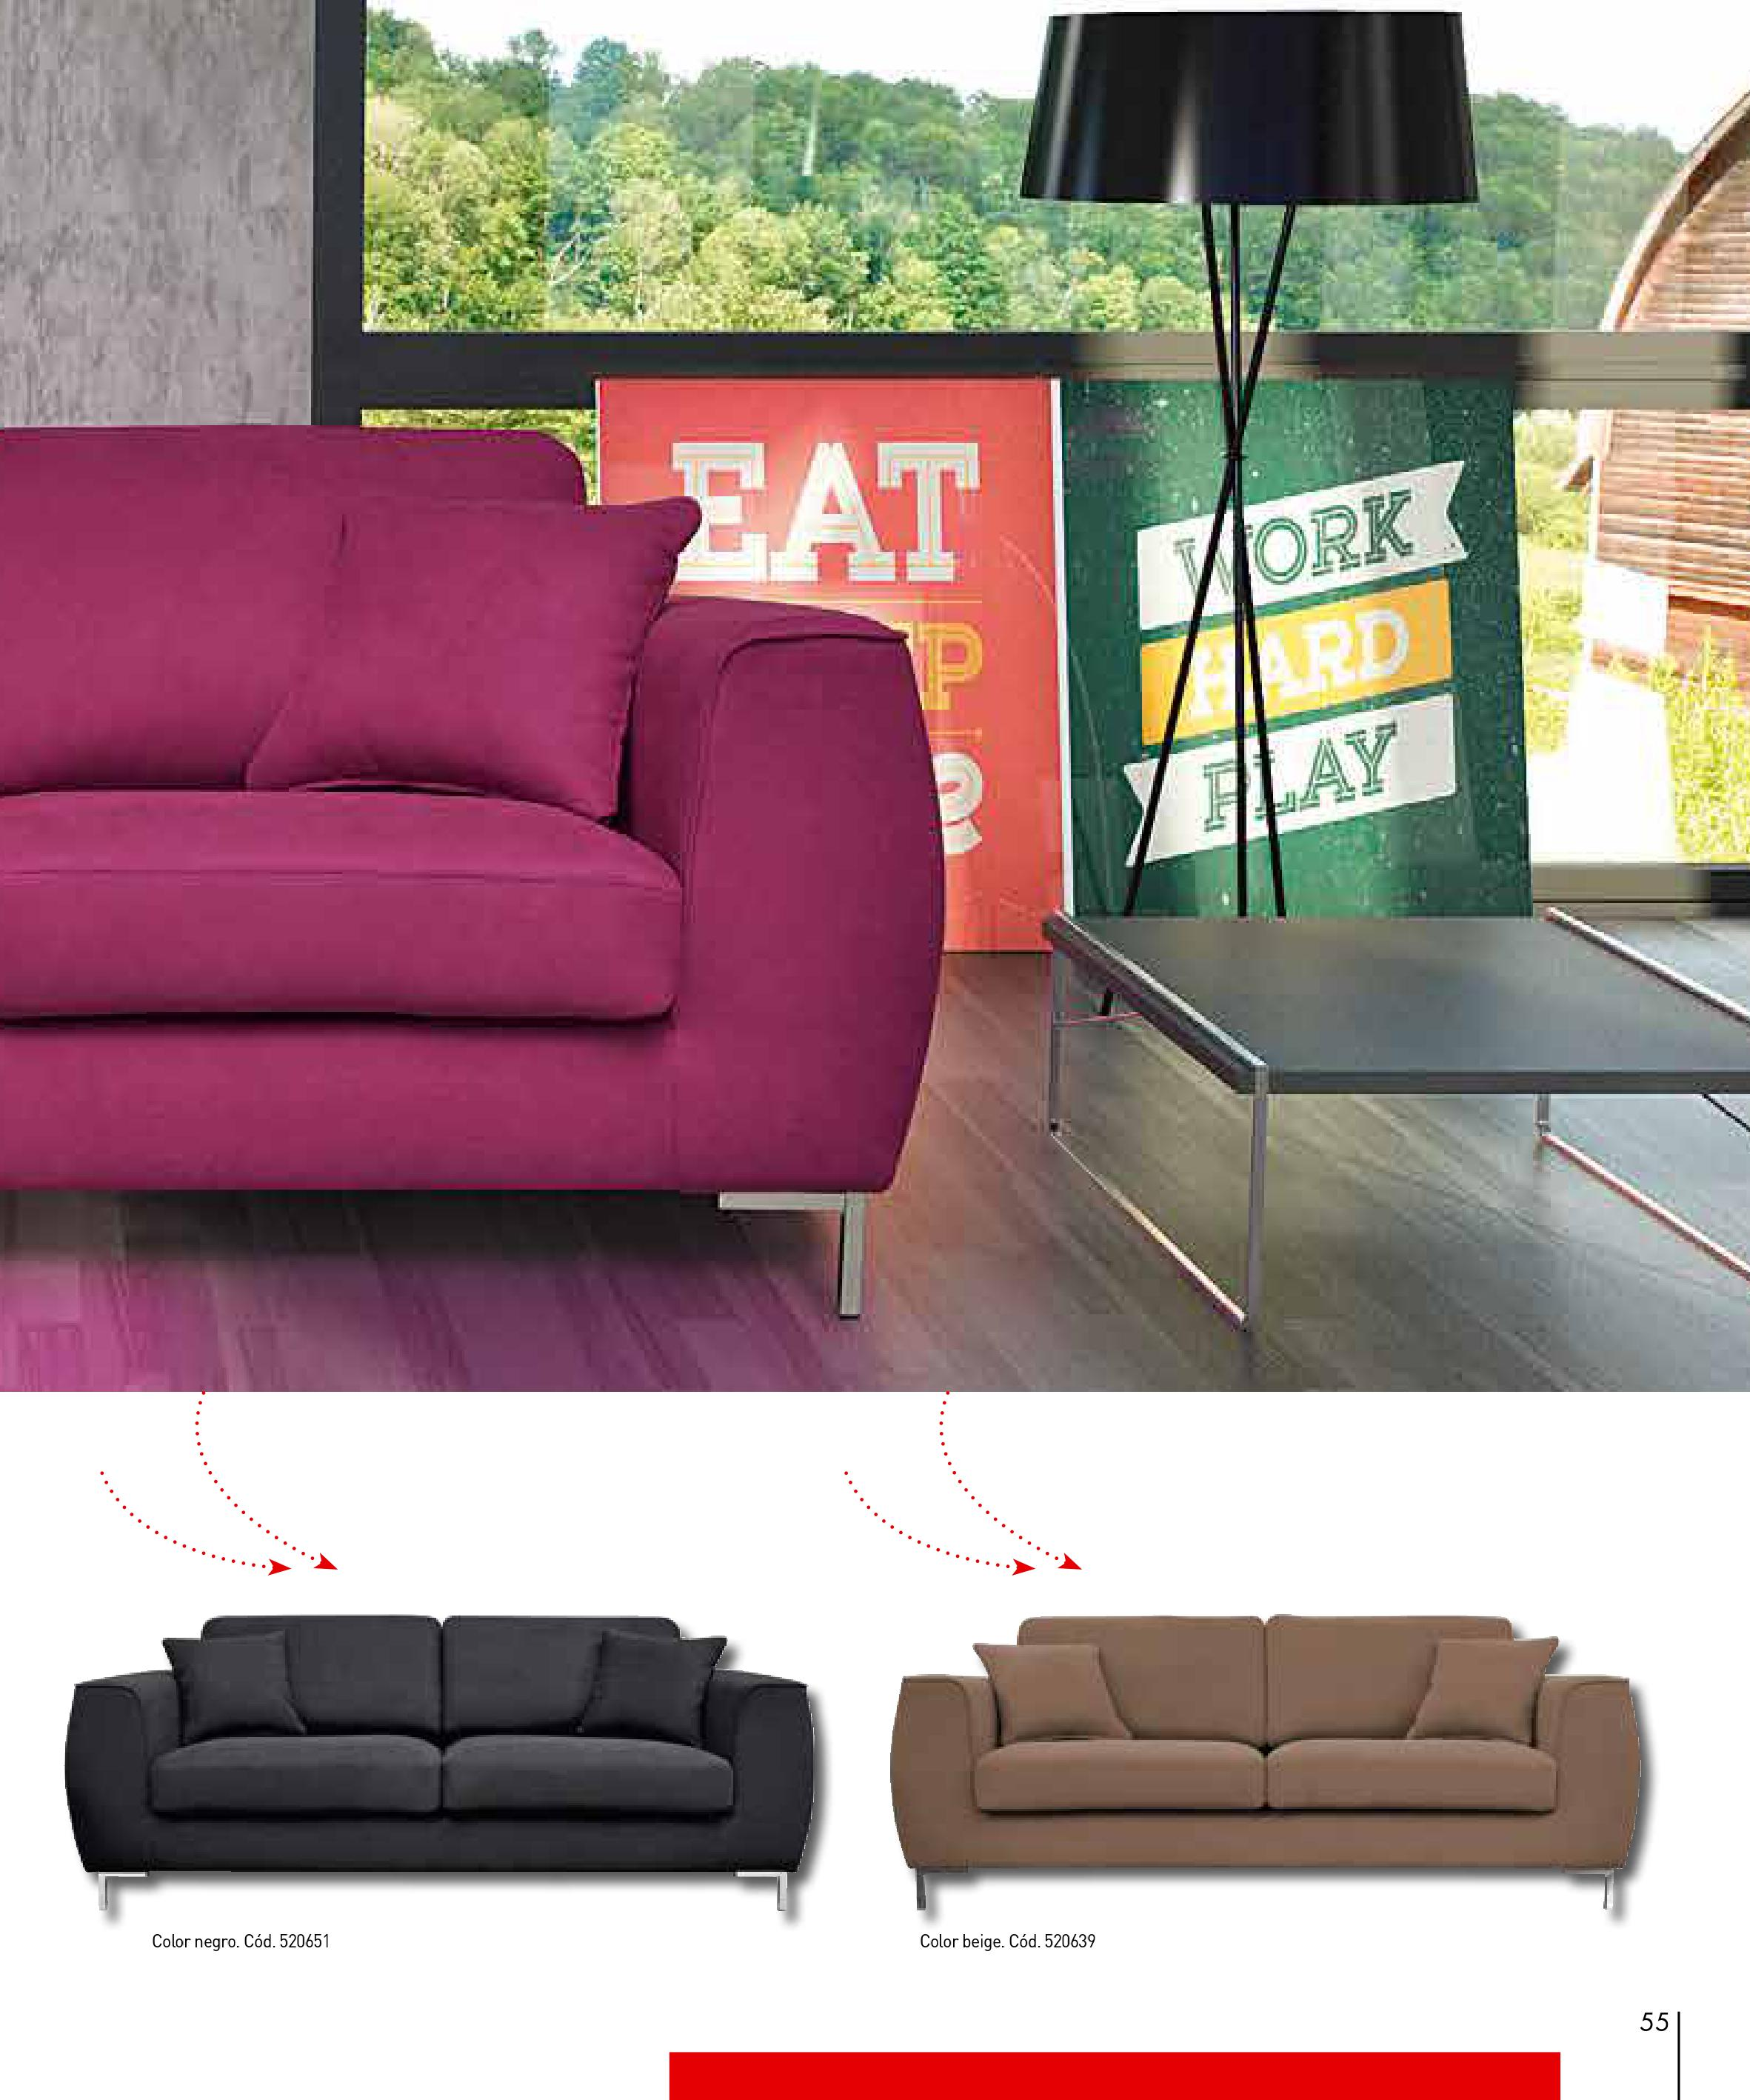 Sofas conforama 201555 for Sofas conforama catalogo